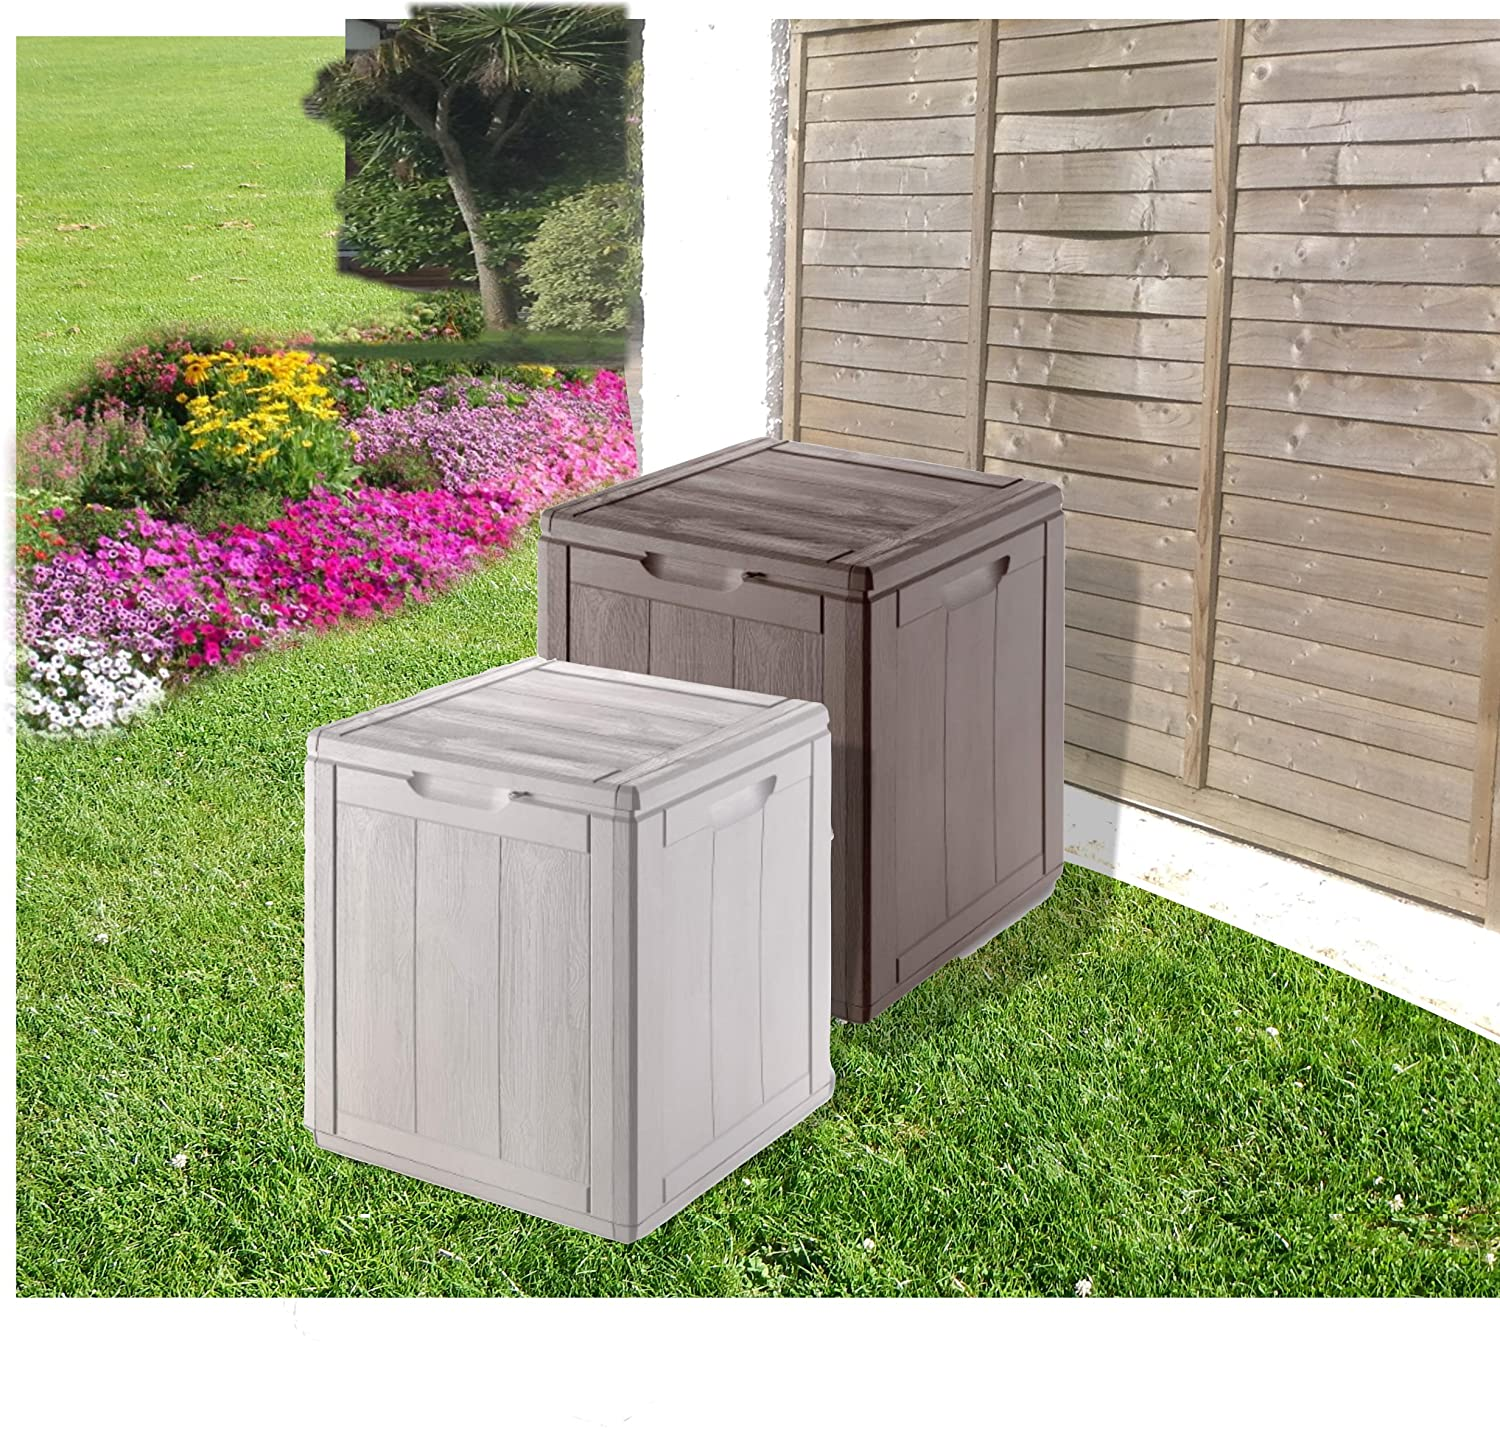 outdoor living chalet shed garden sale zoom today storage grand product